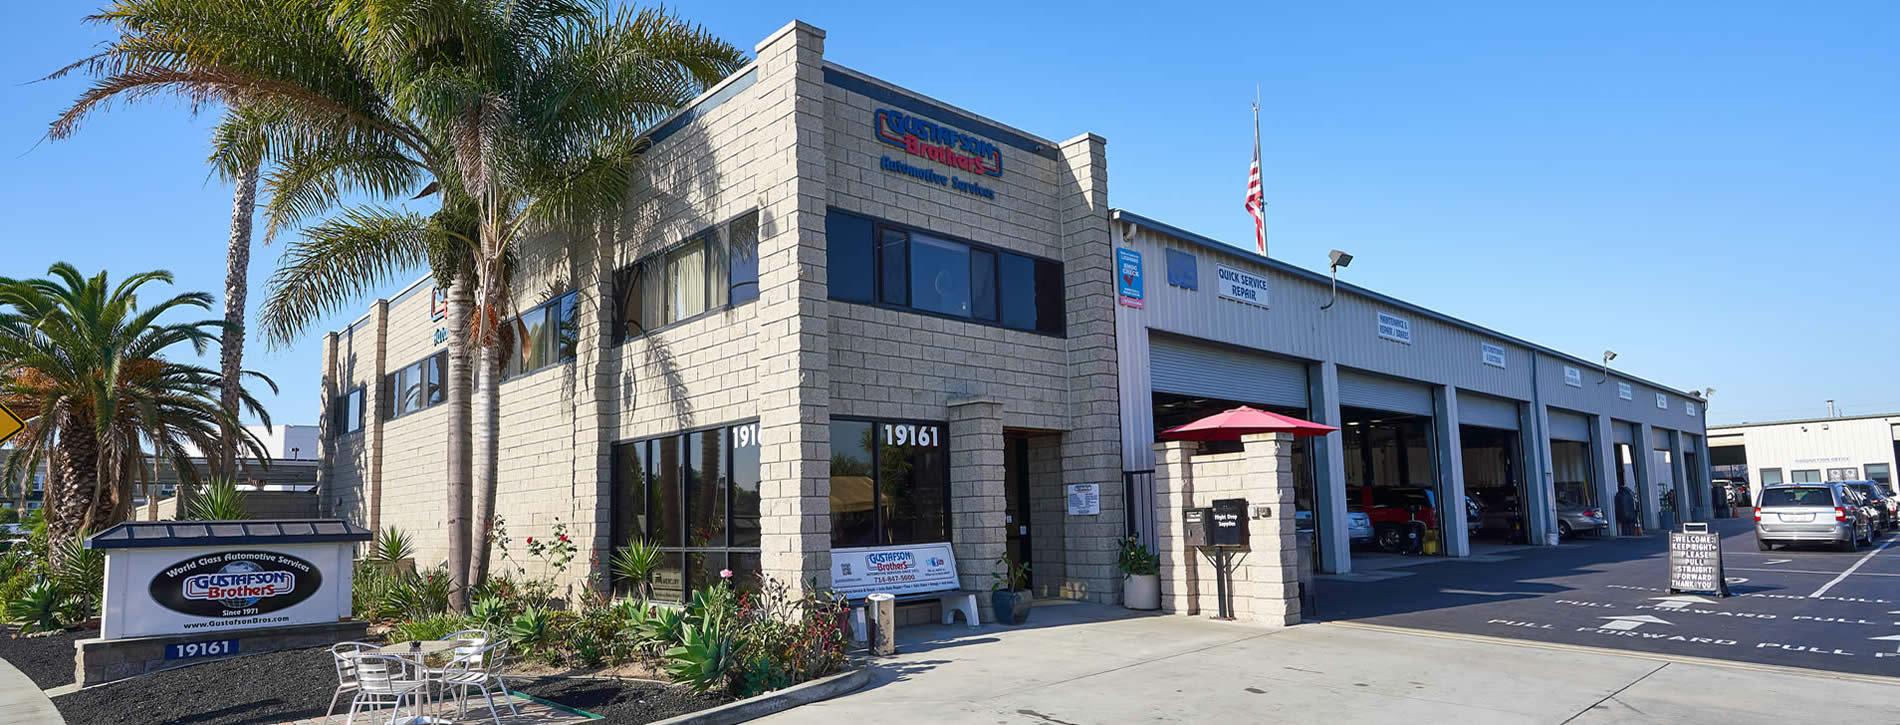 gustafson brothers auto repair shop & auto body shop huntington beach ca best auto shop